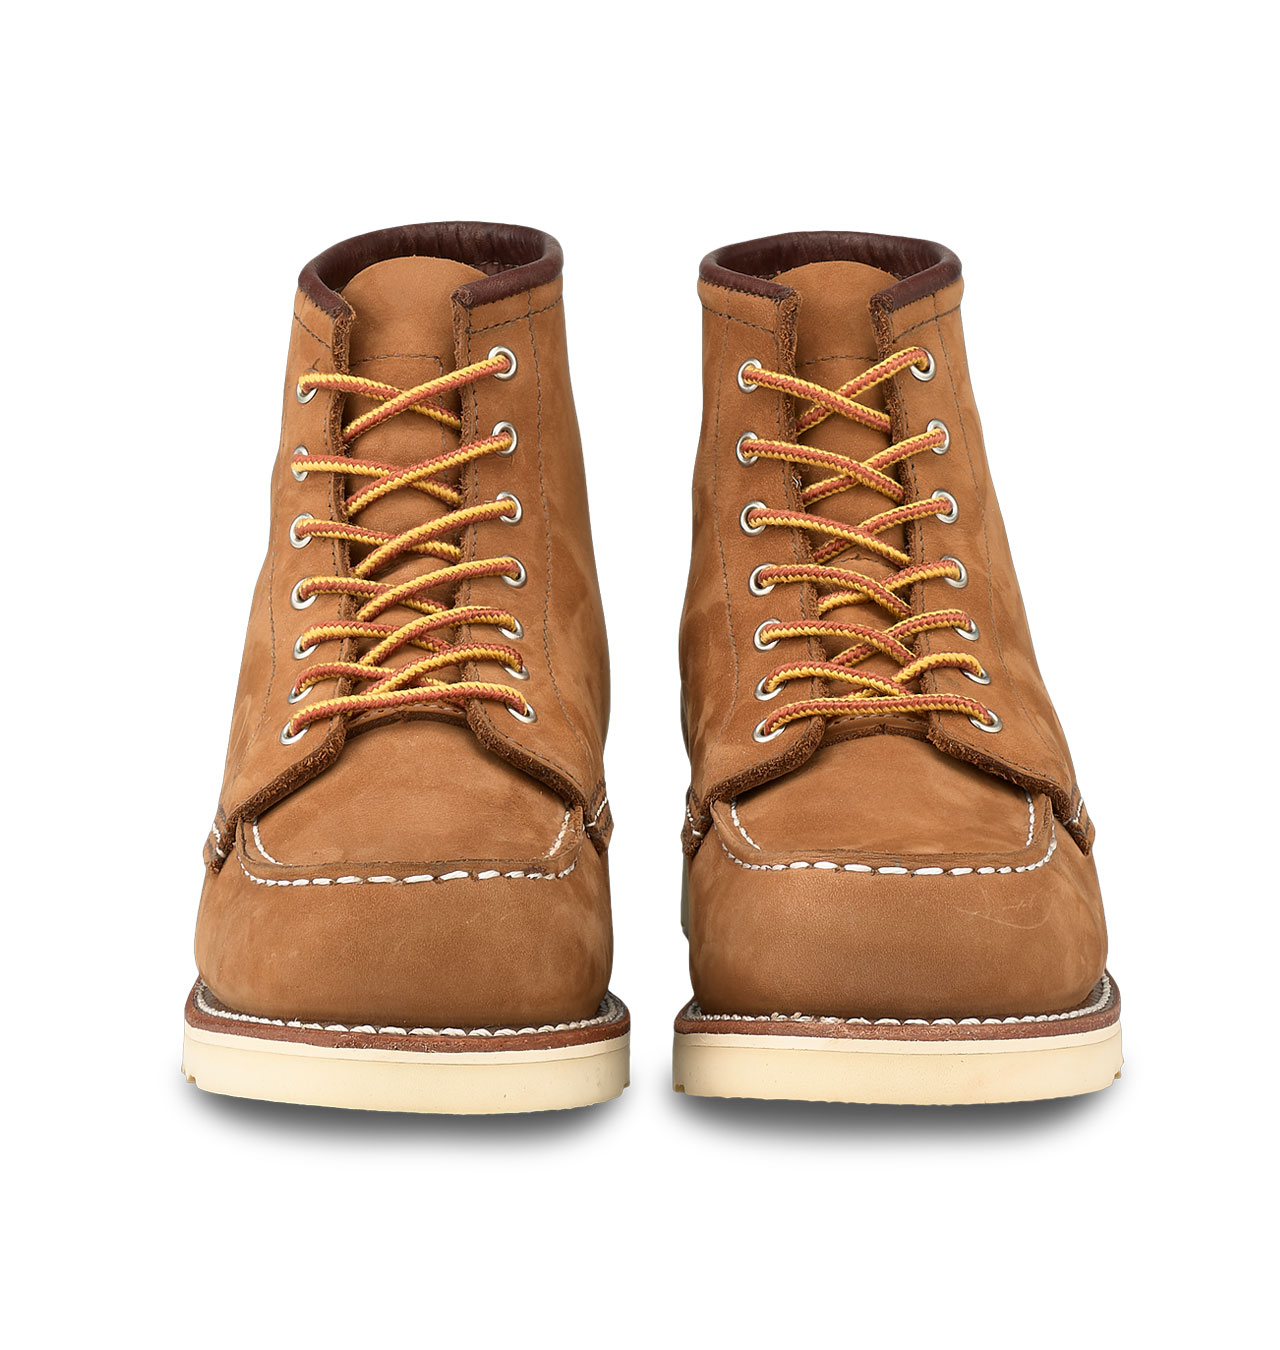 cd2988d4a4a Red Wing Shoes Woman Style No 3372 6-Inch Moc Toe - Honey Chinook Leather